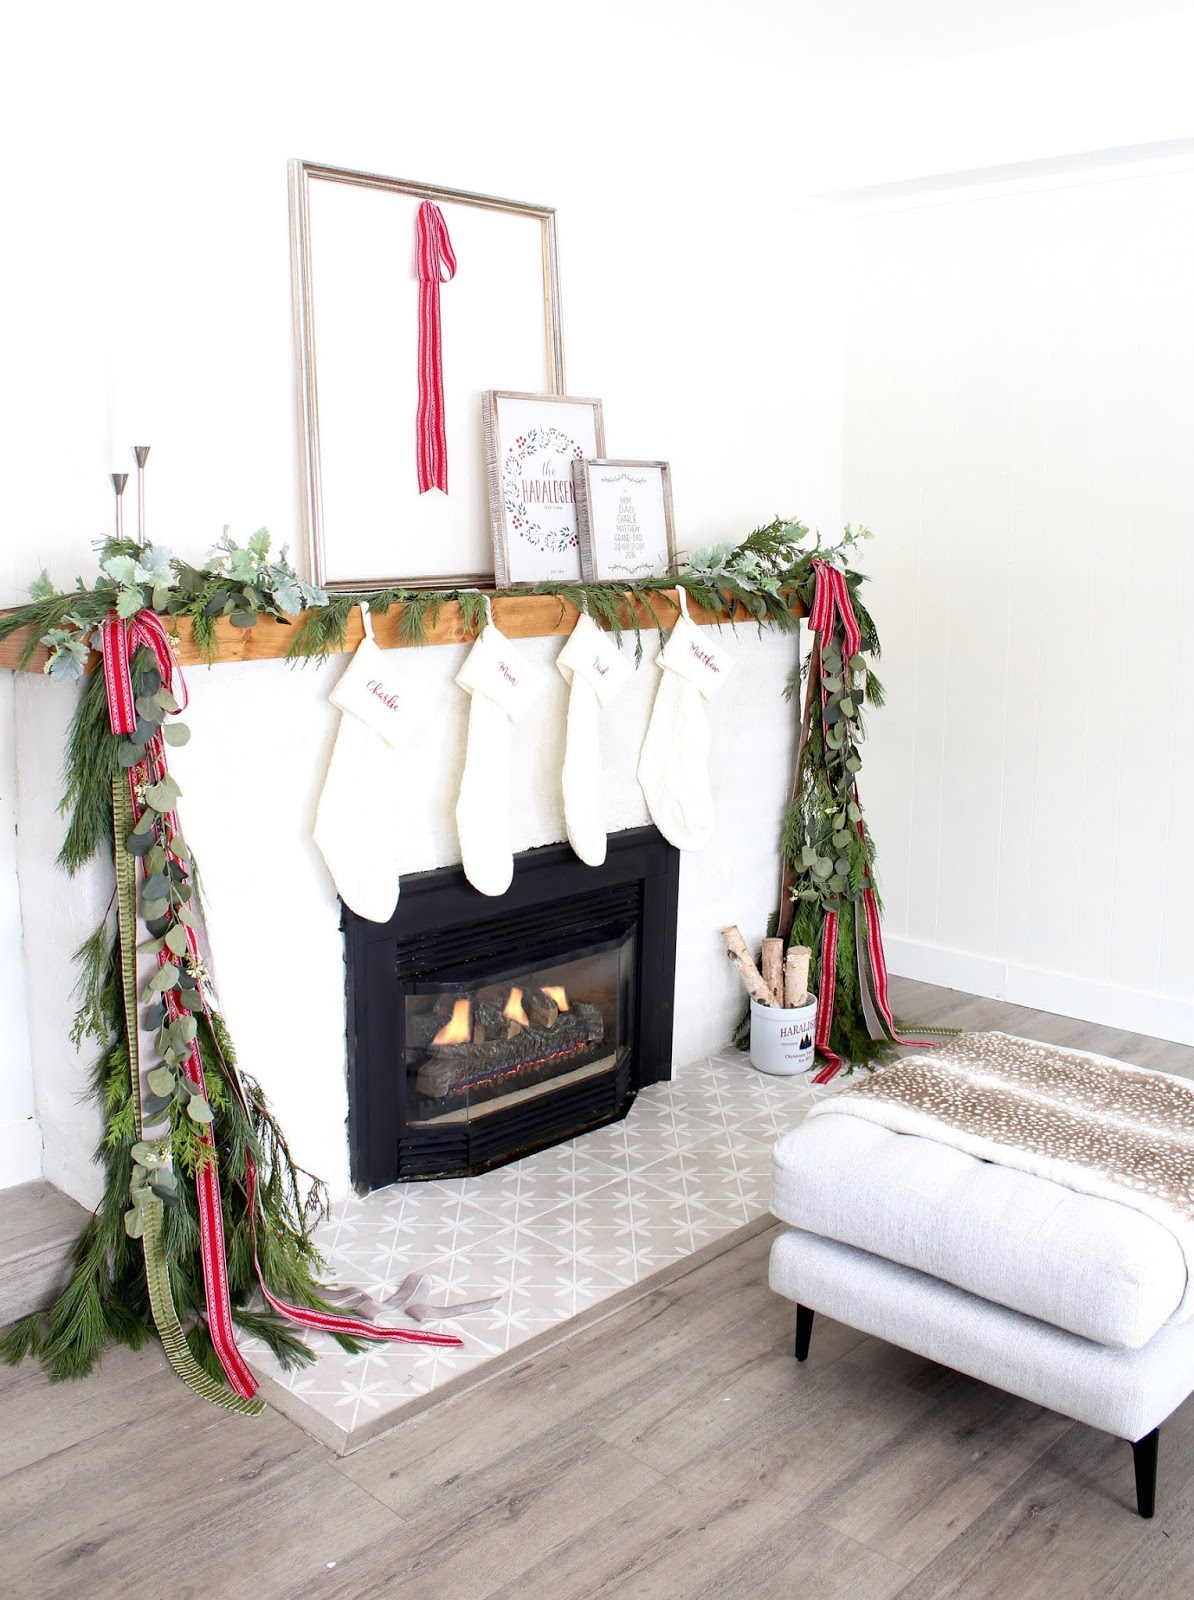 Modern-Holiday-Mantel-ideas-harlow-and-thistle-2